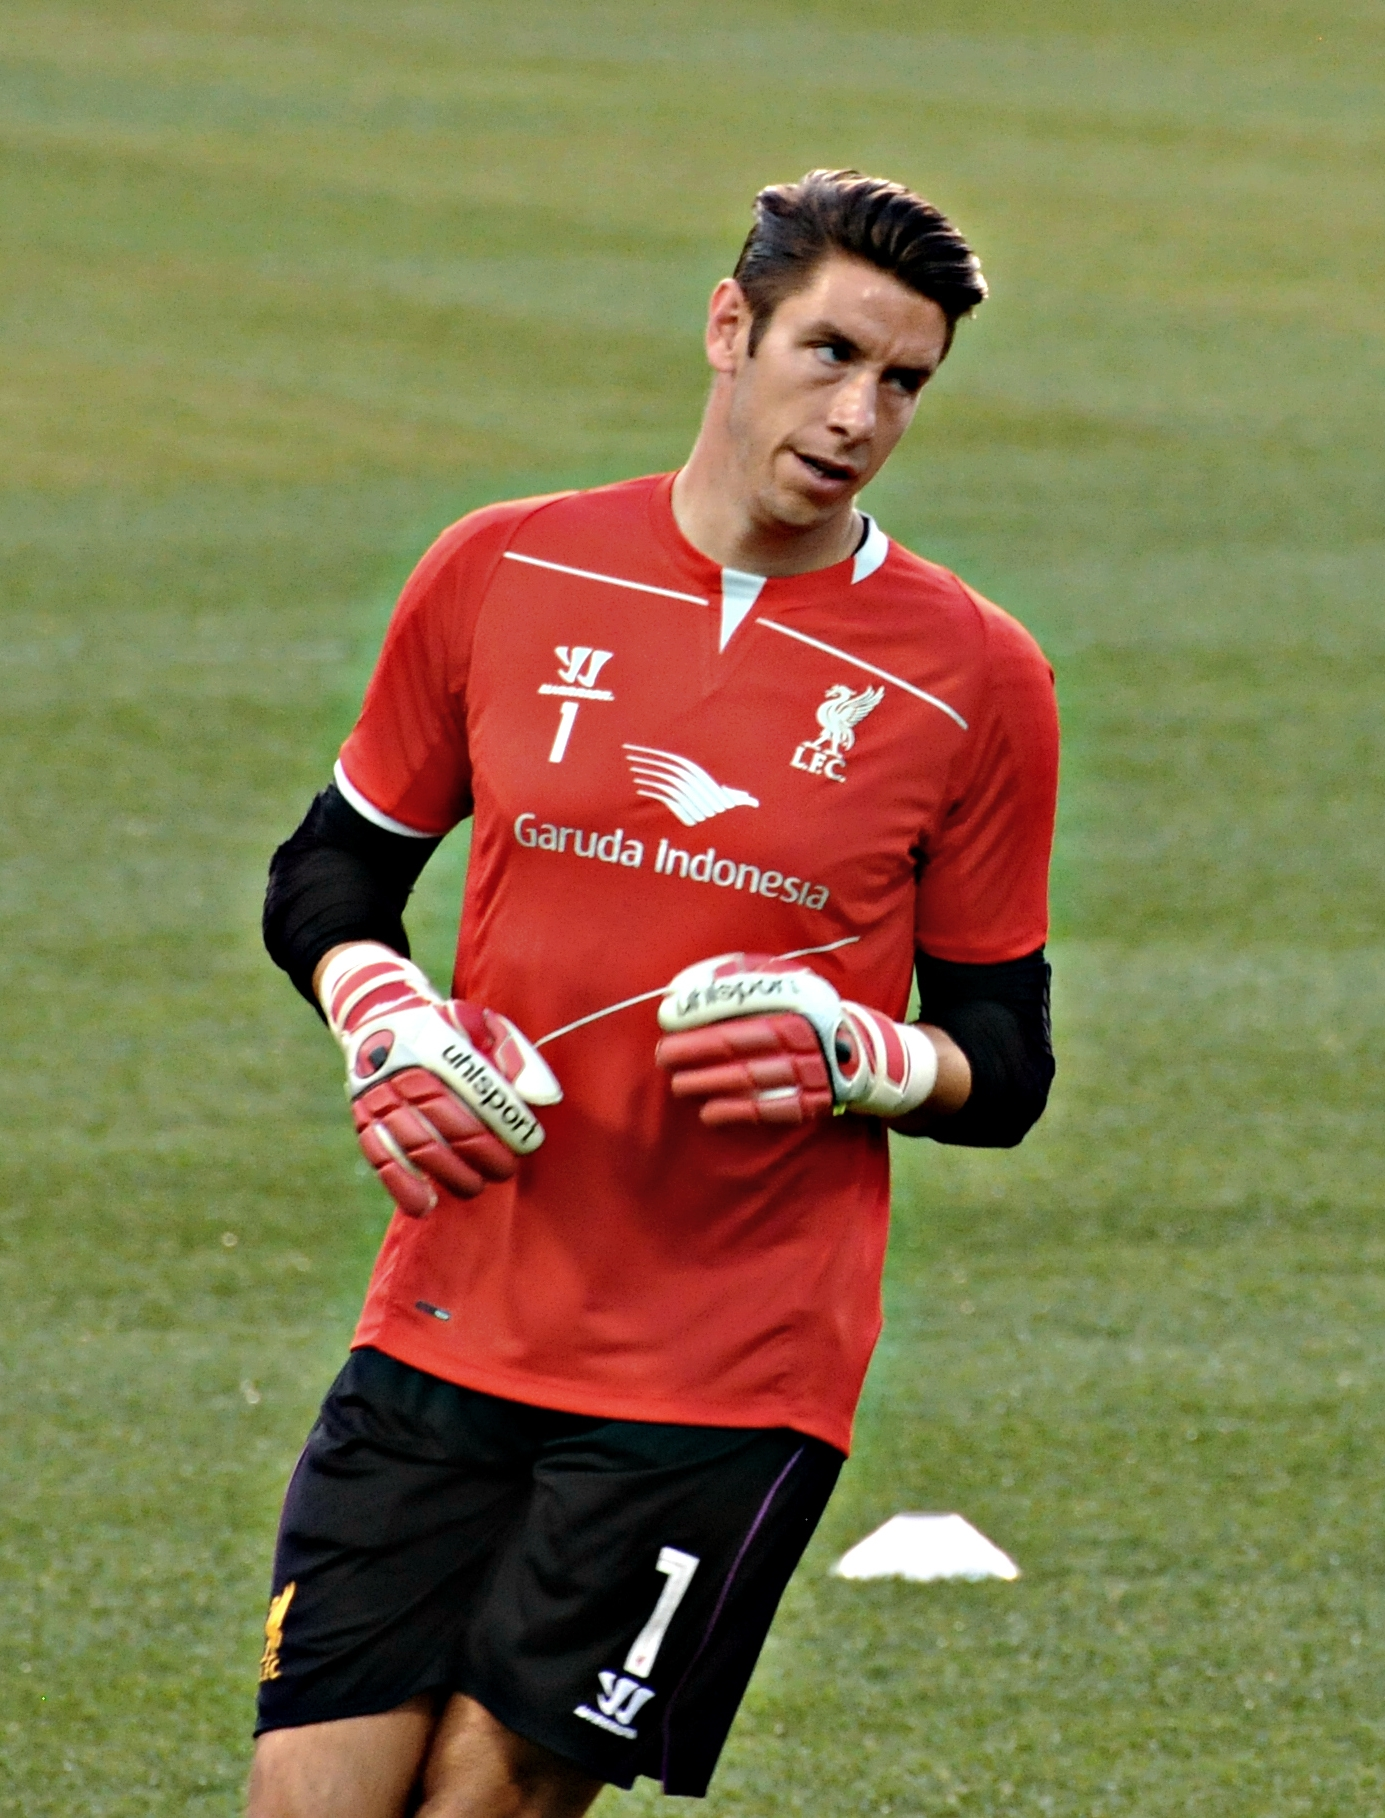 The 36-year old son of father (?) and mother(?) Brad Jones in 2018 photo. Brad Jones earned a  million dollar salary - leaving the net worth at 3 million in 2018